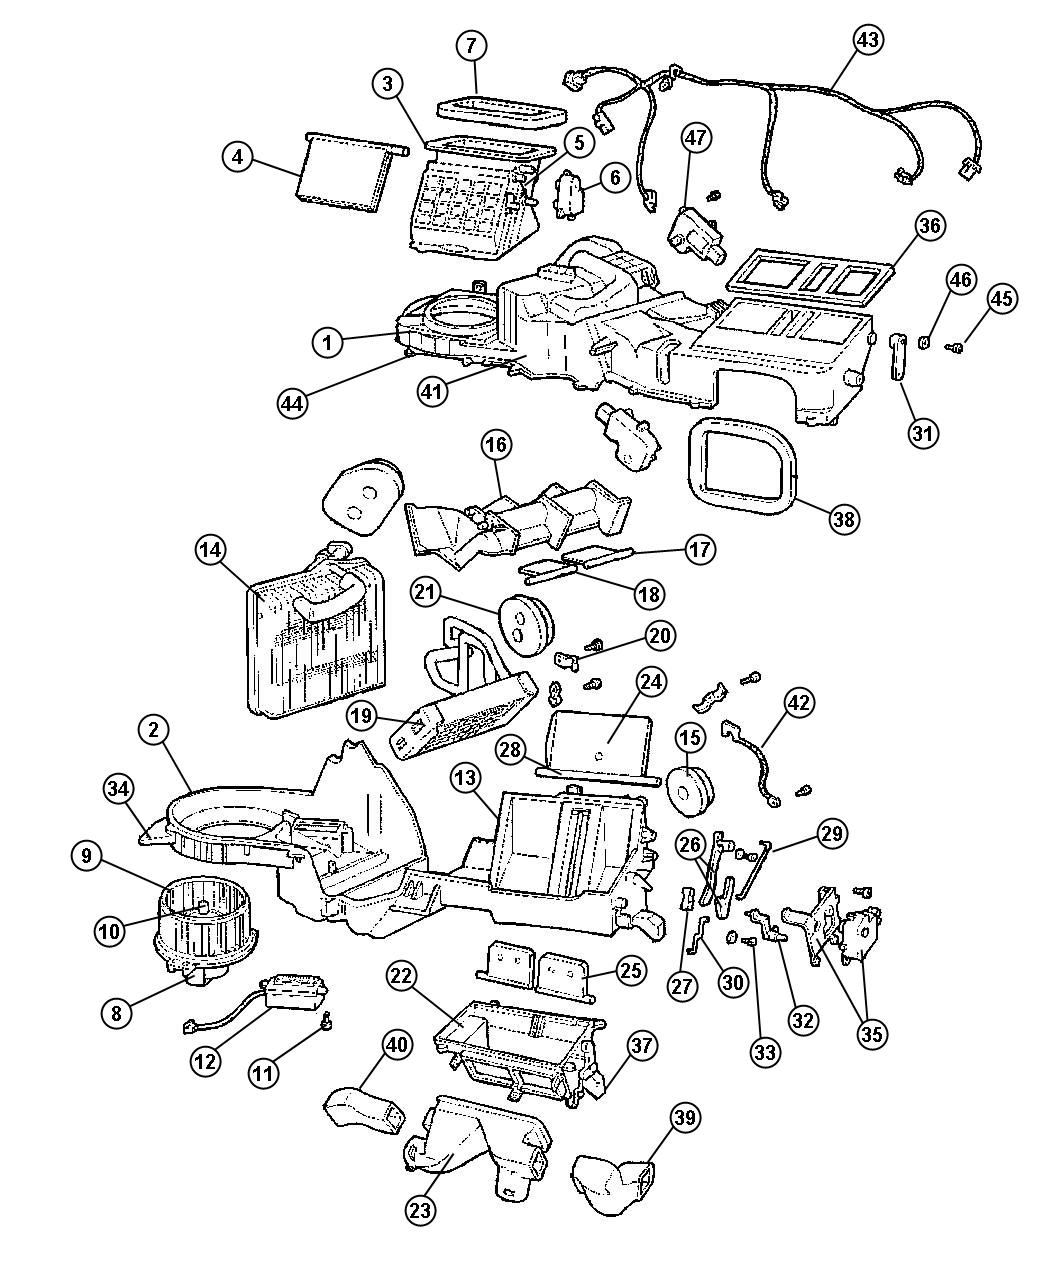 Diagram Wiring Diagram For 2001 Jeep Cherokee Full Version Hd Quality Jeep Cherokee Diagramdeaner Jodenjoy It